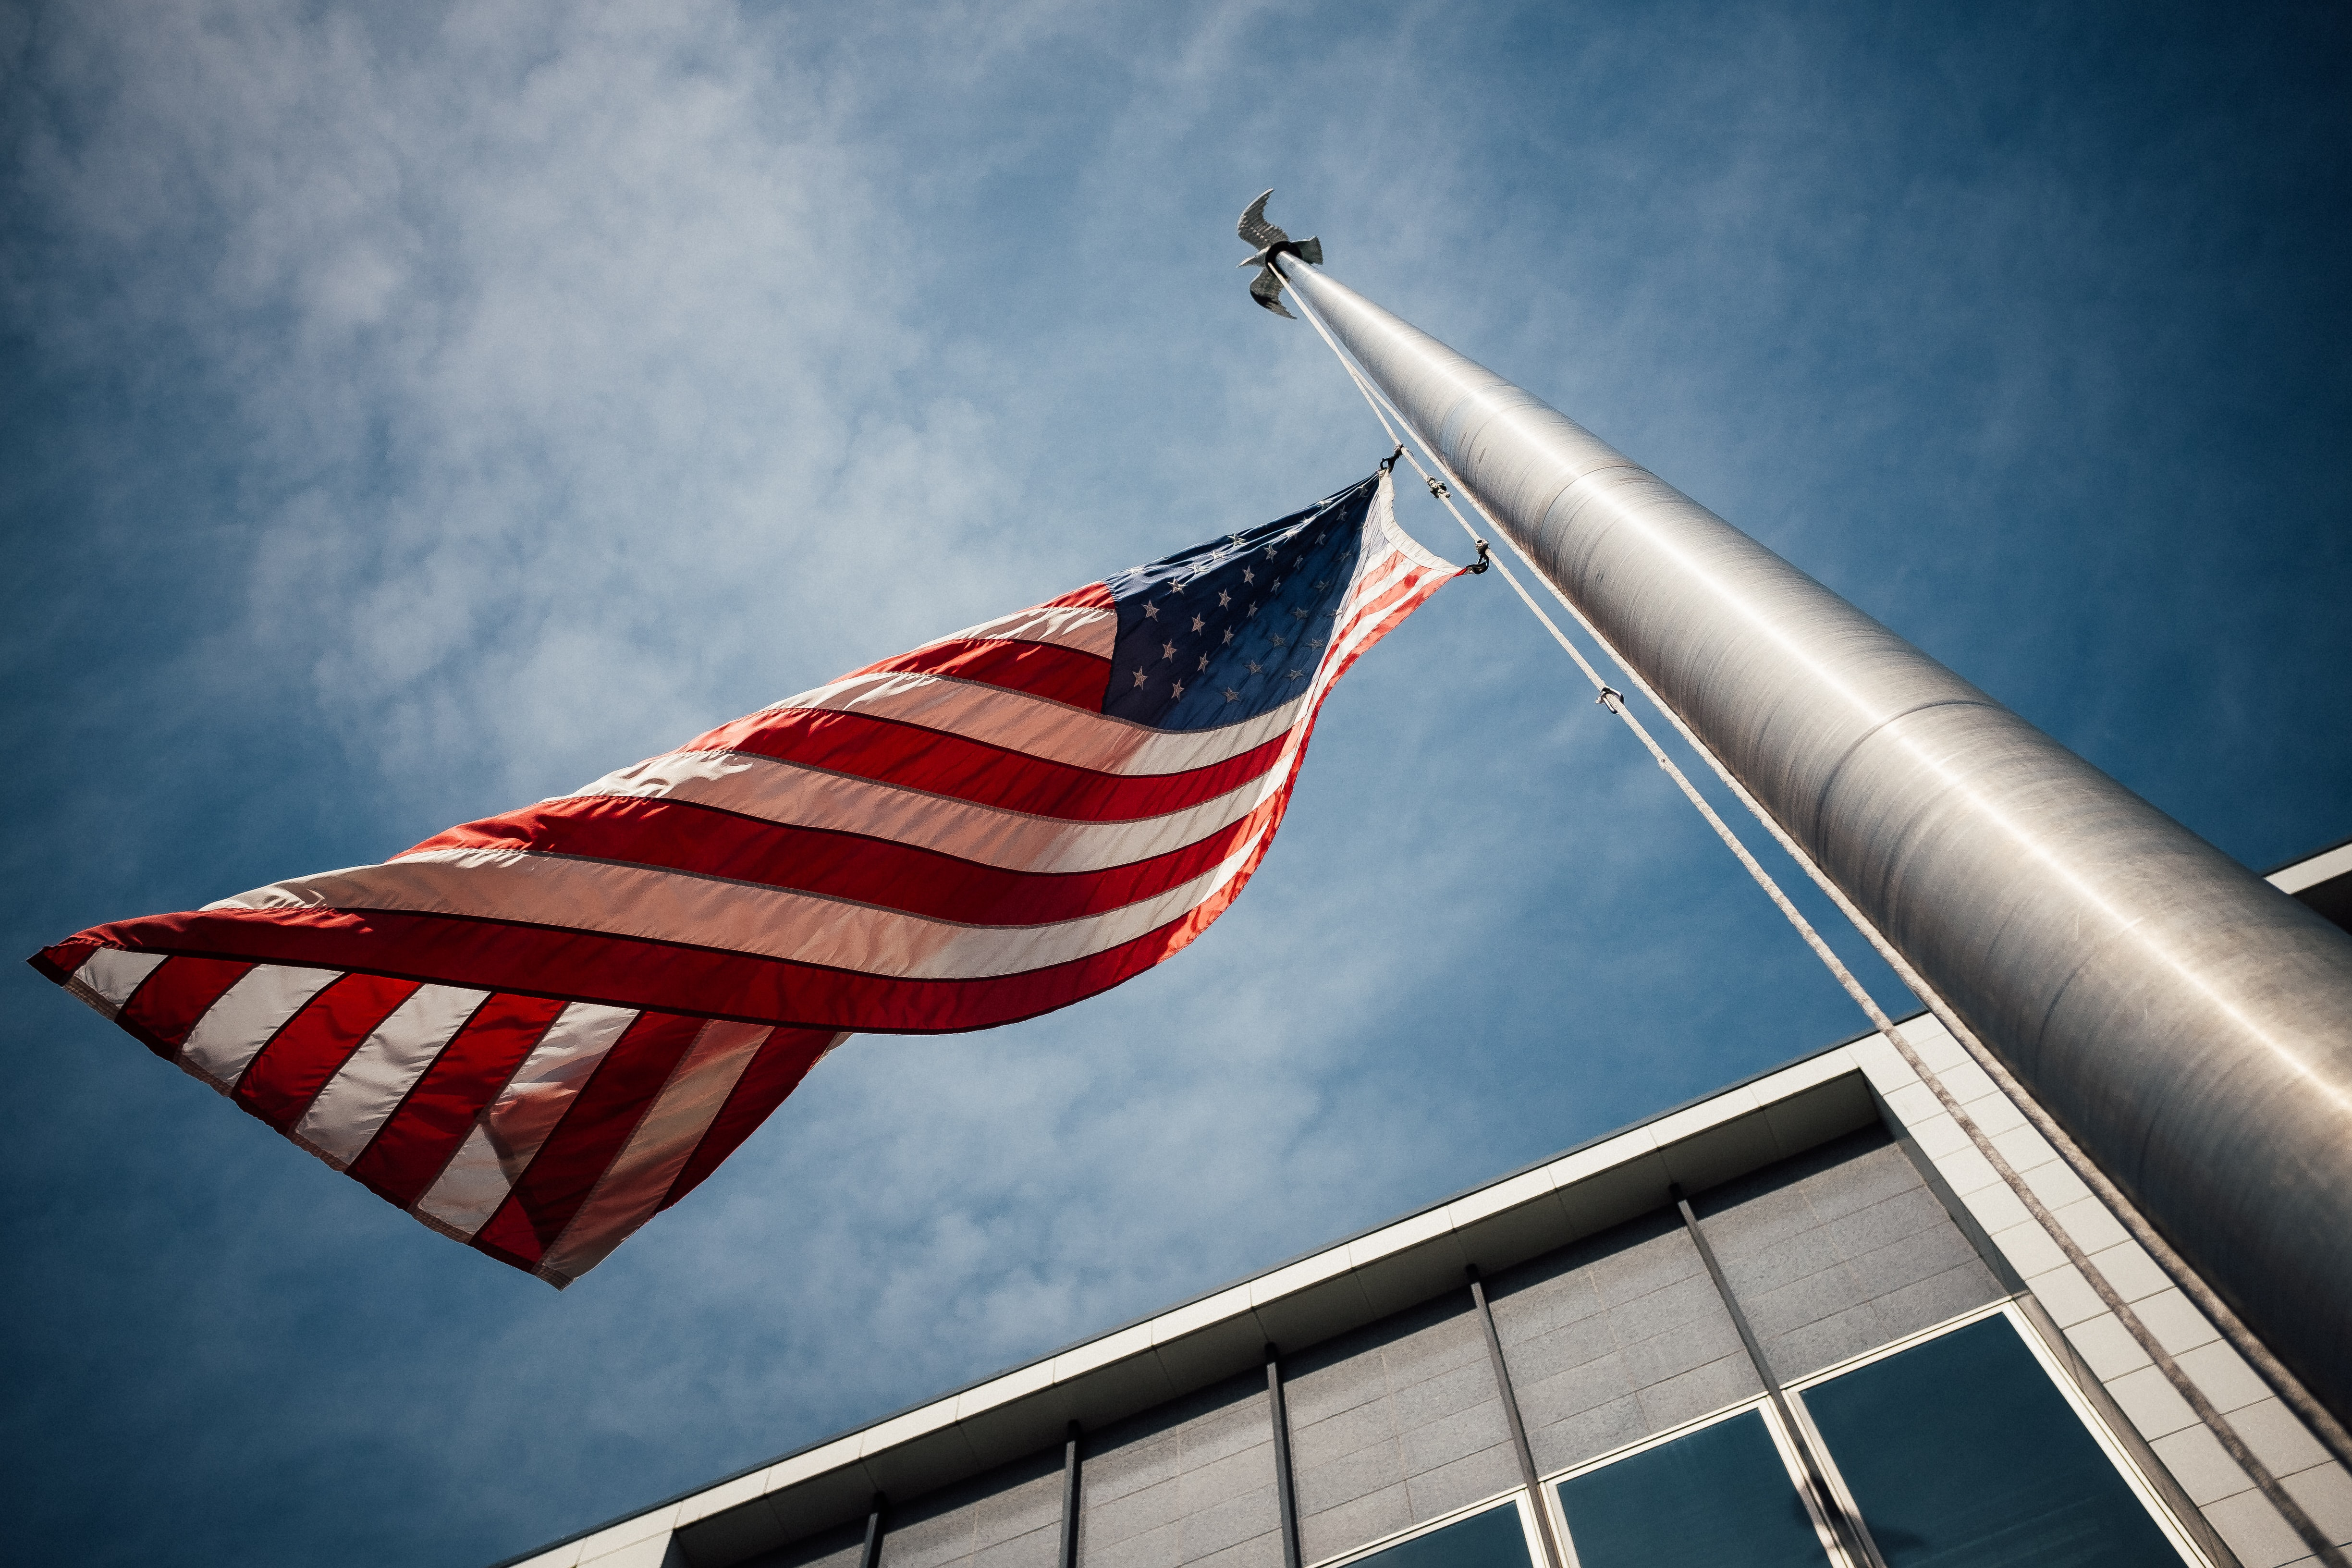 Looking up at a flagpole with the American flag flying half mast